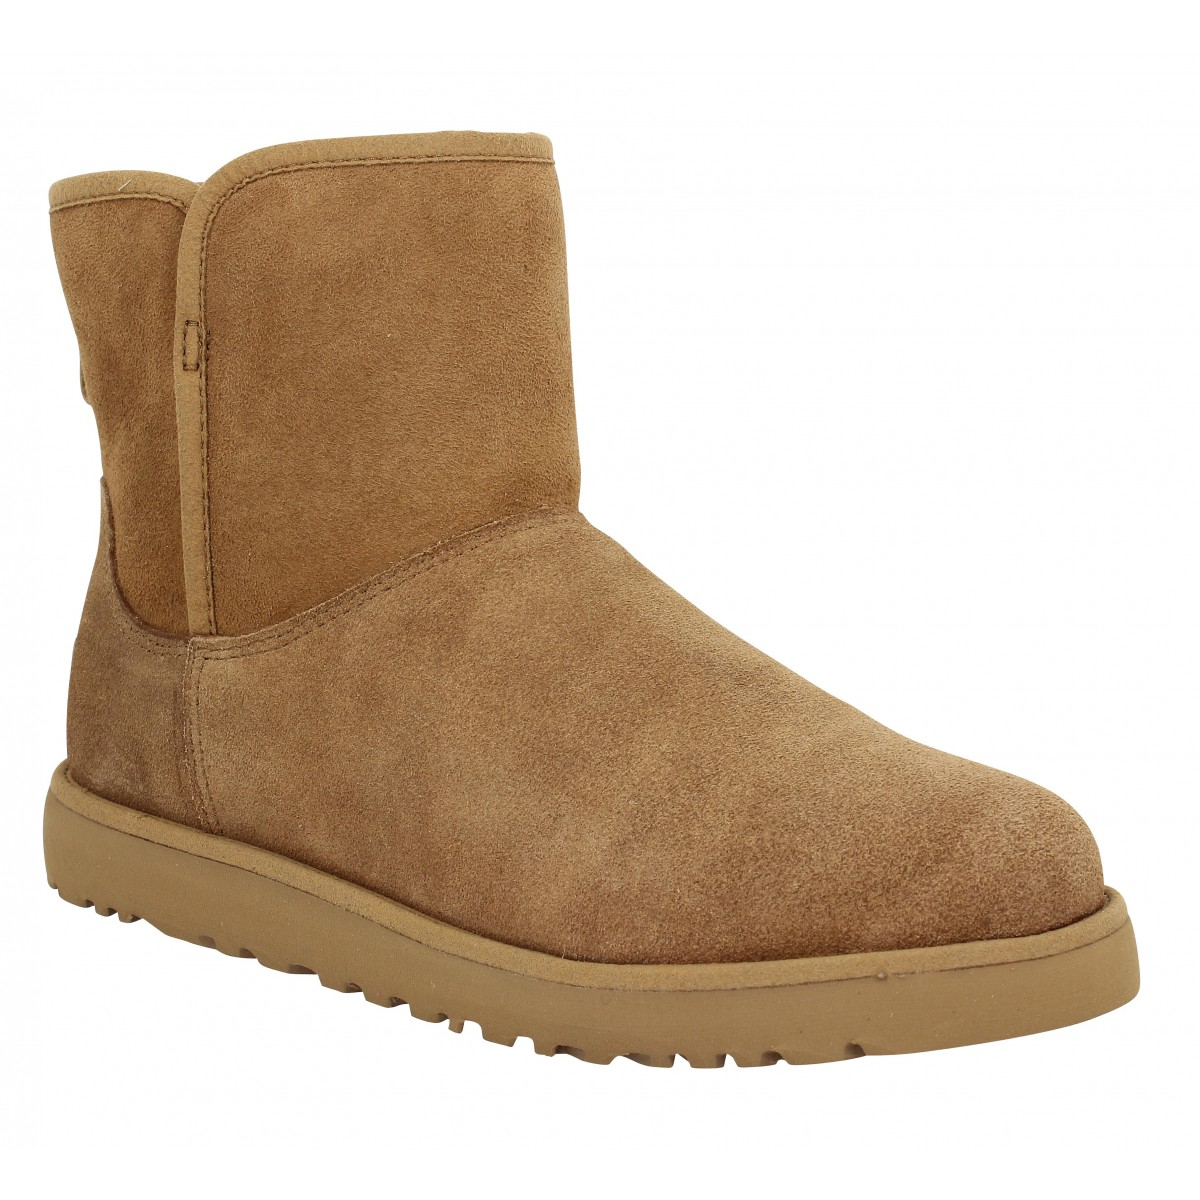 Bottines UGG AUSTRALIA Cory velours Chestnut